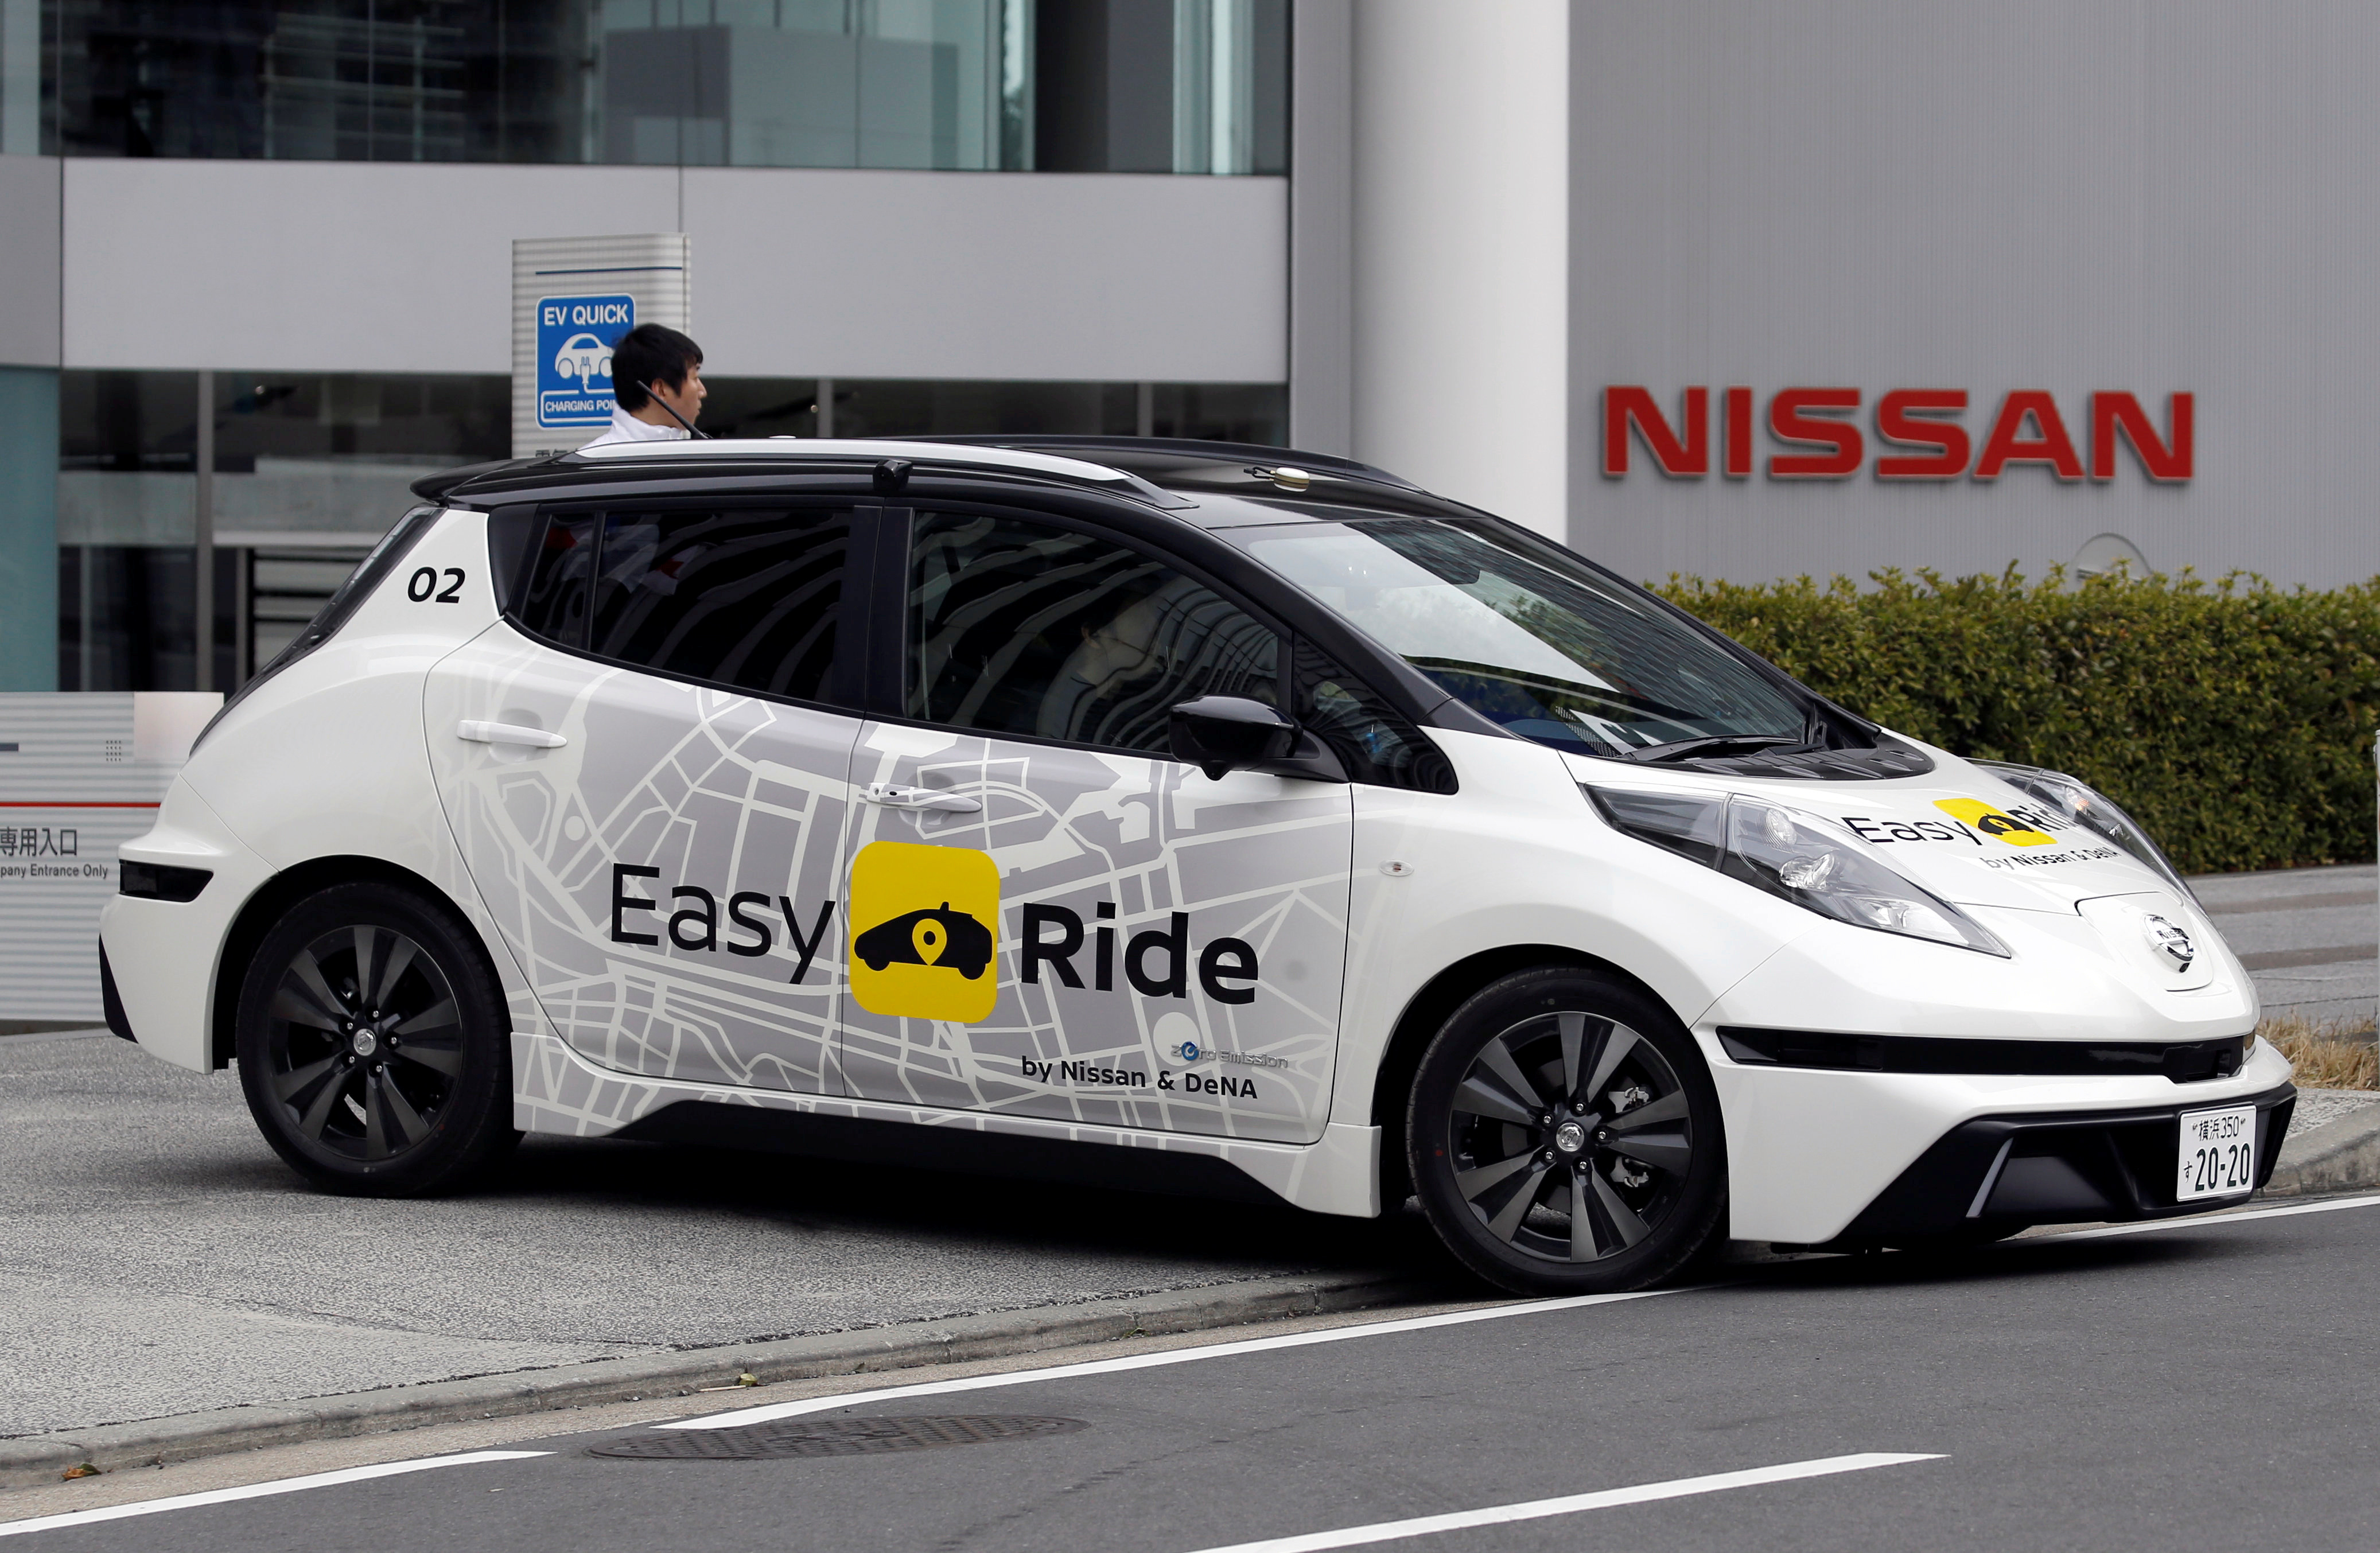 ta concept befirstrank this to car nissan save electric nissansings lives sings